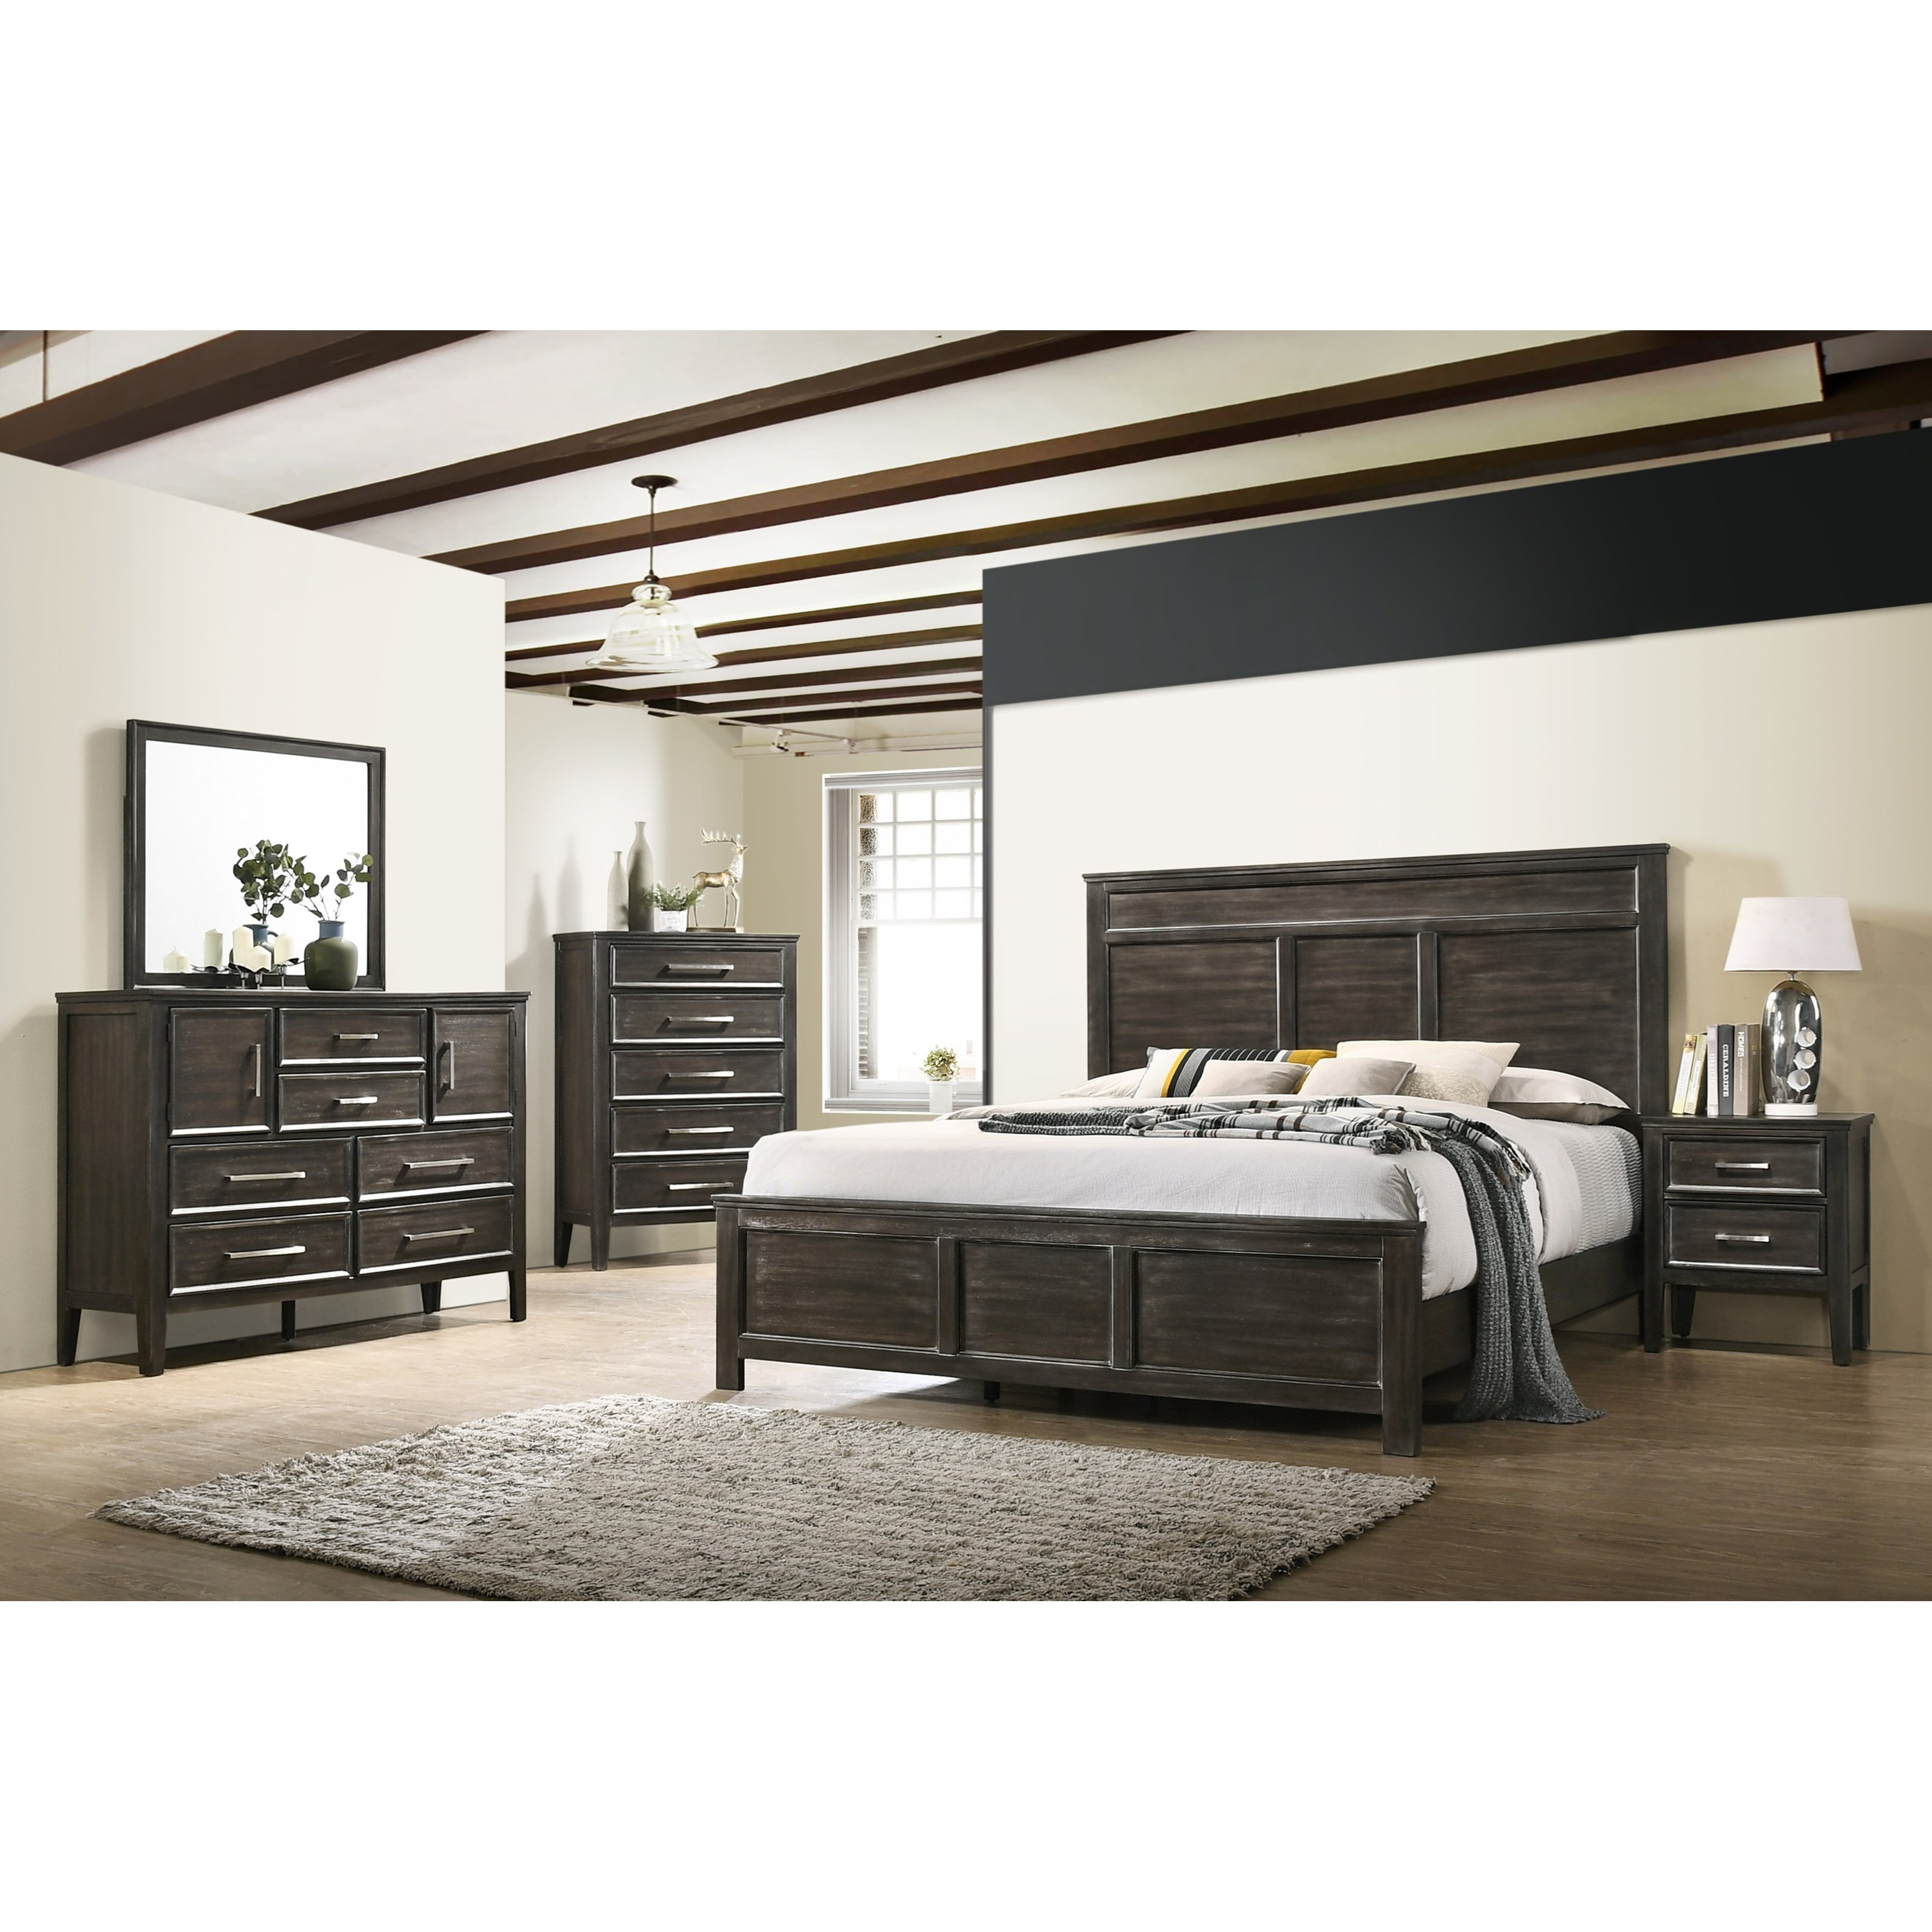 Andover California King Bedroom Group by New Classic at A1 Furniture & Mattress